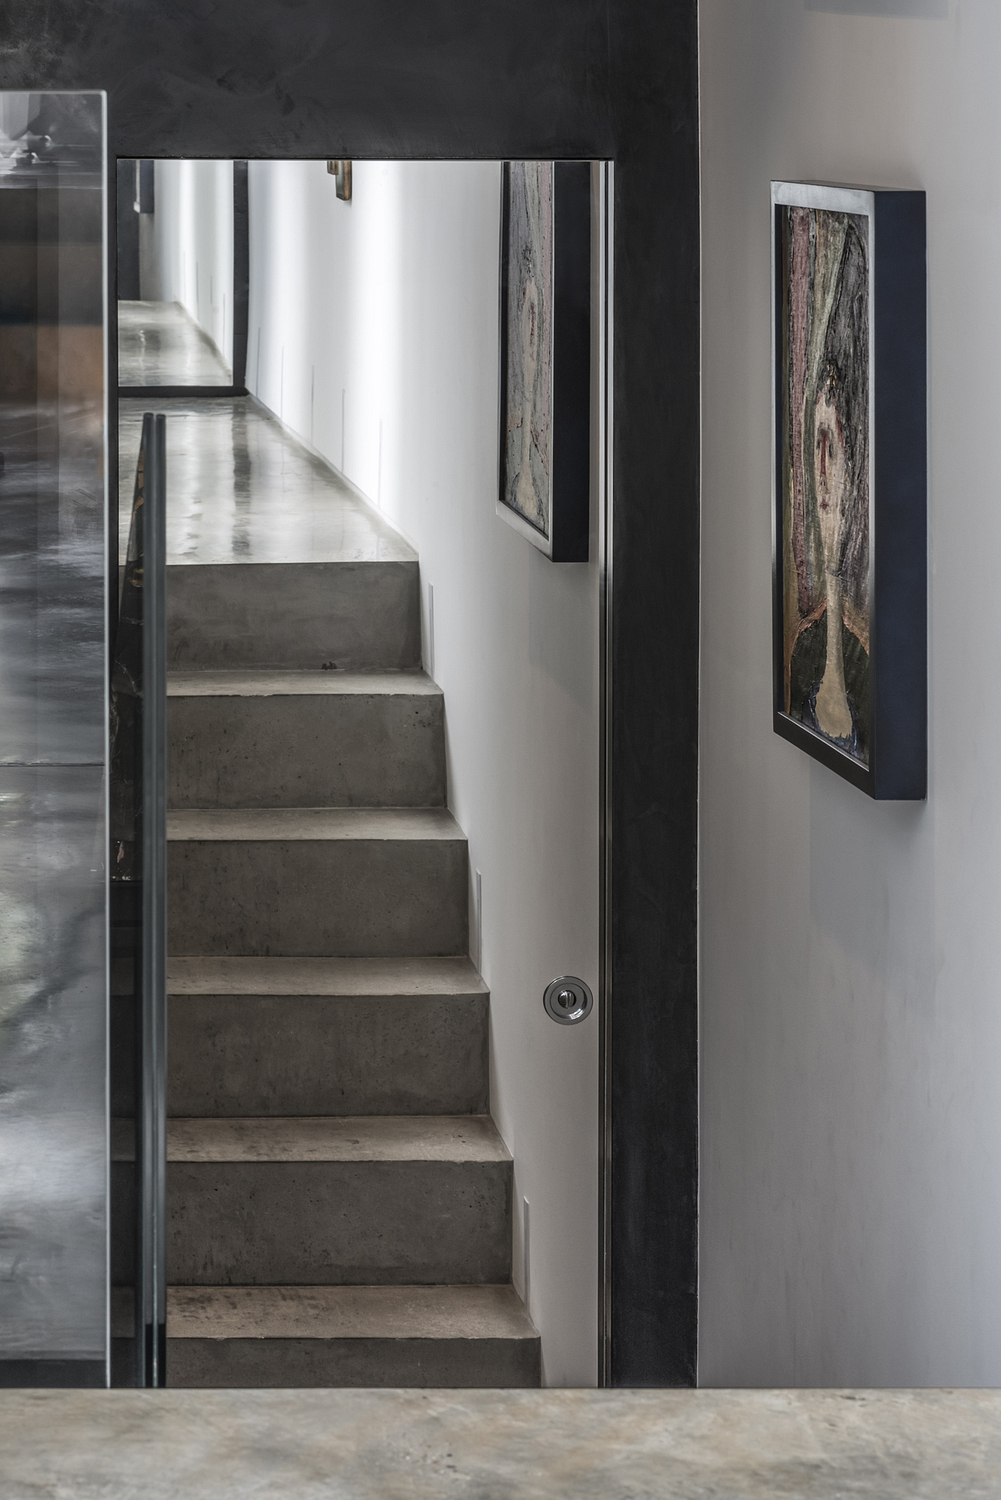 Mirrored door reflecting polished concrete stairs